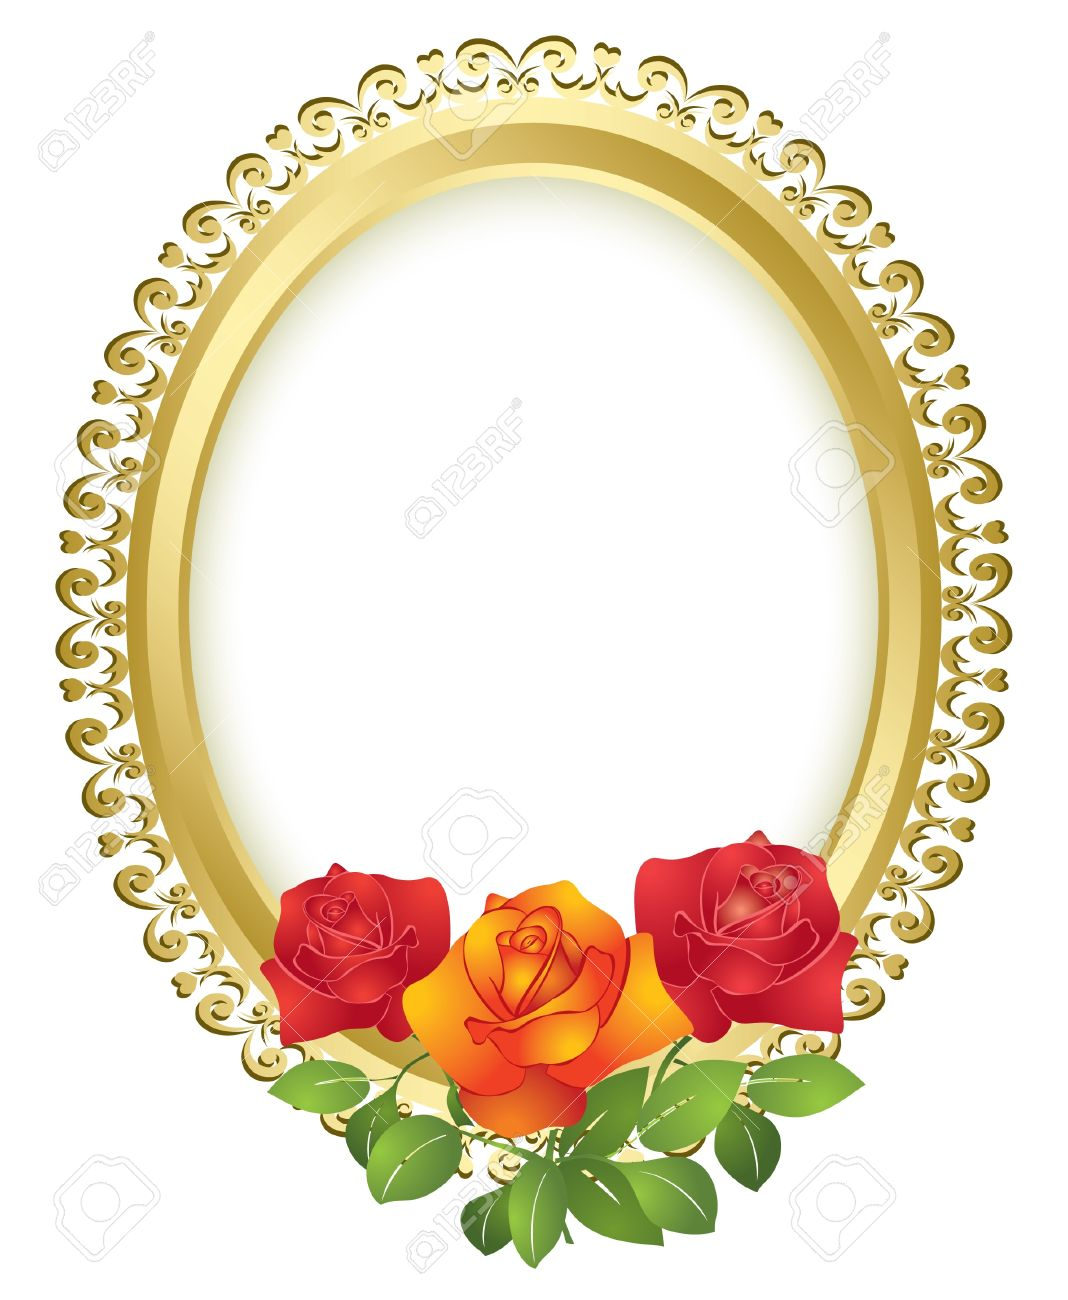 71d1ebfc7c5d oval golden frame with roses - vector Stock Vector - 10362984